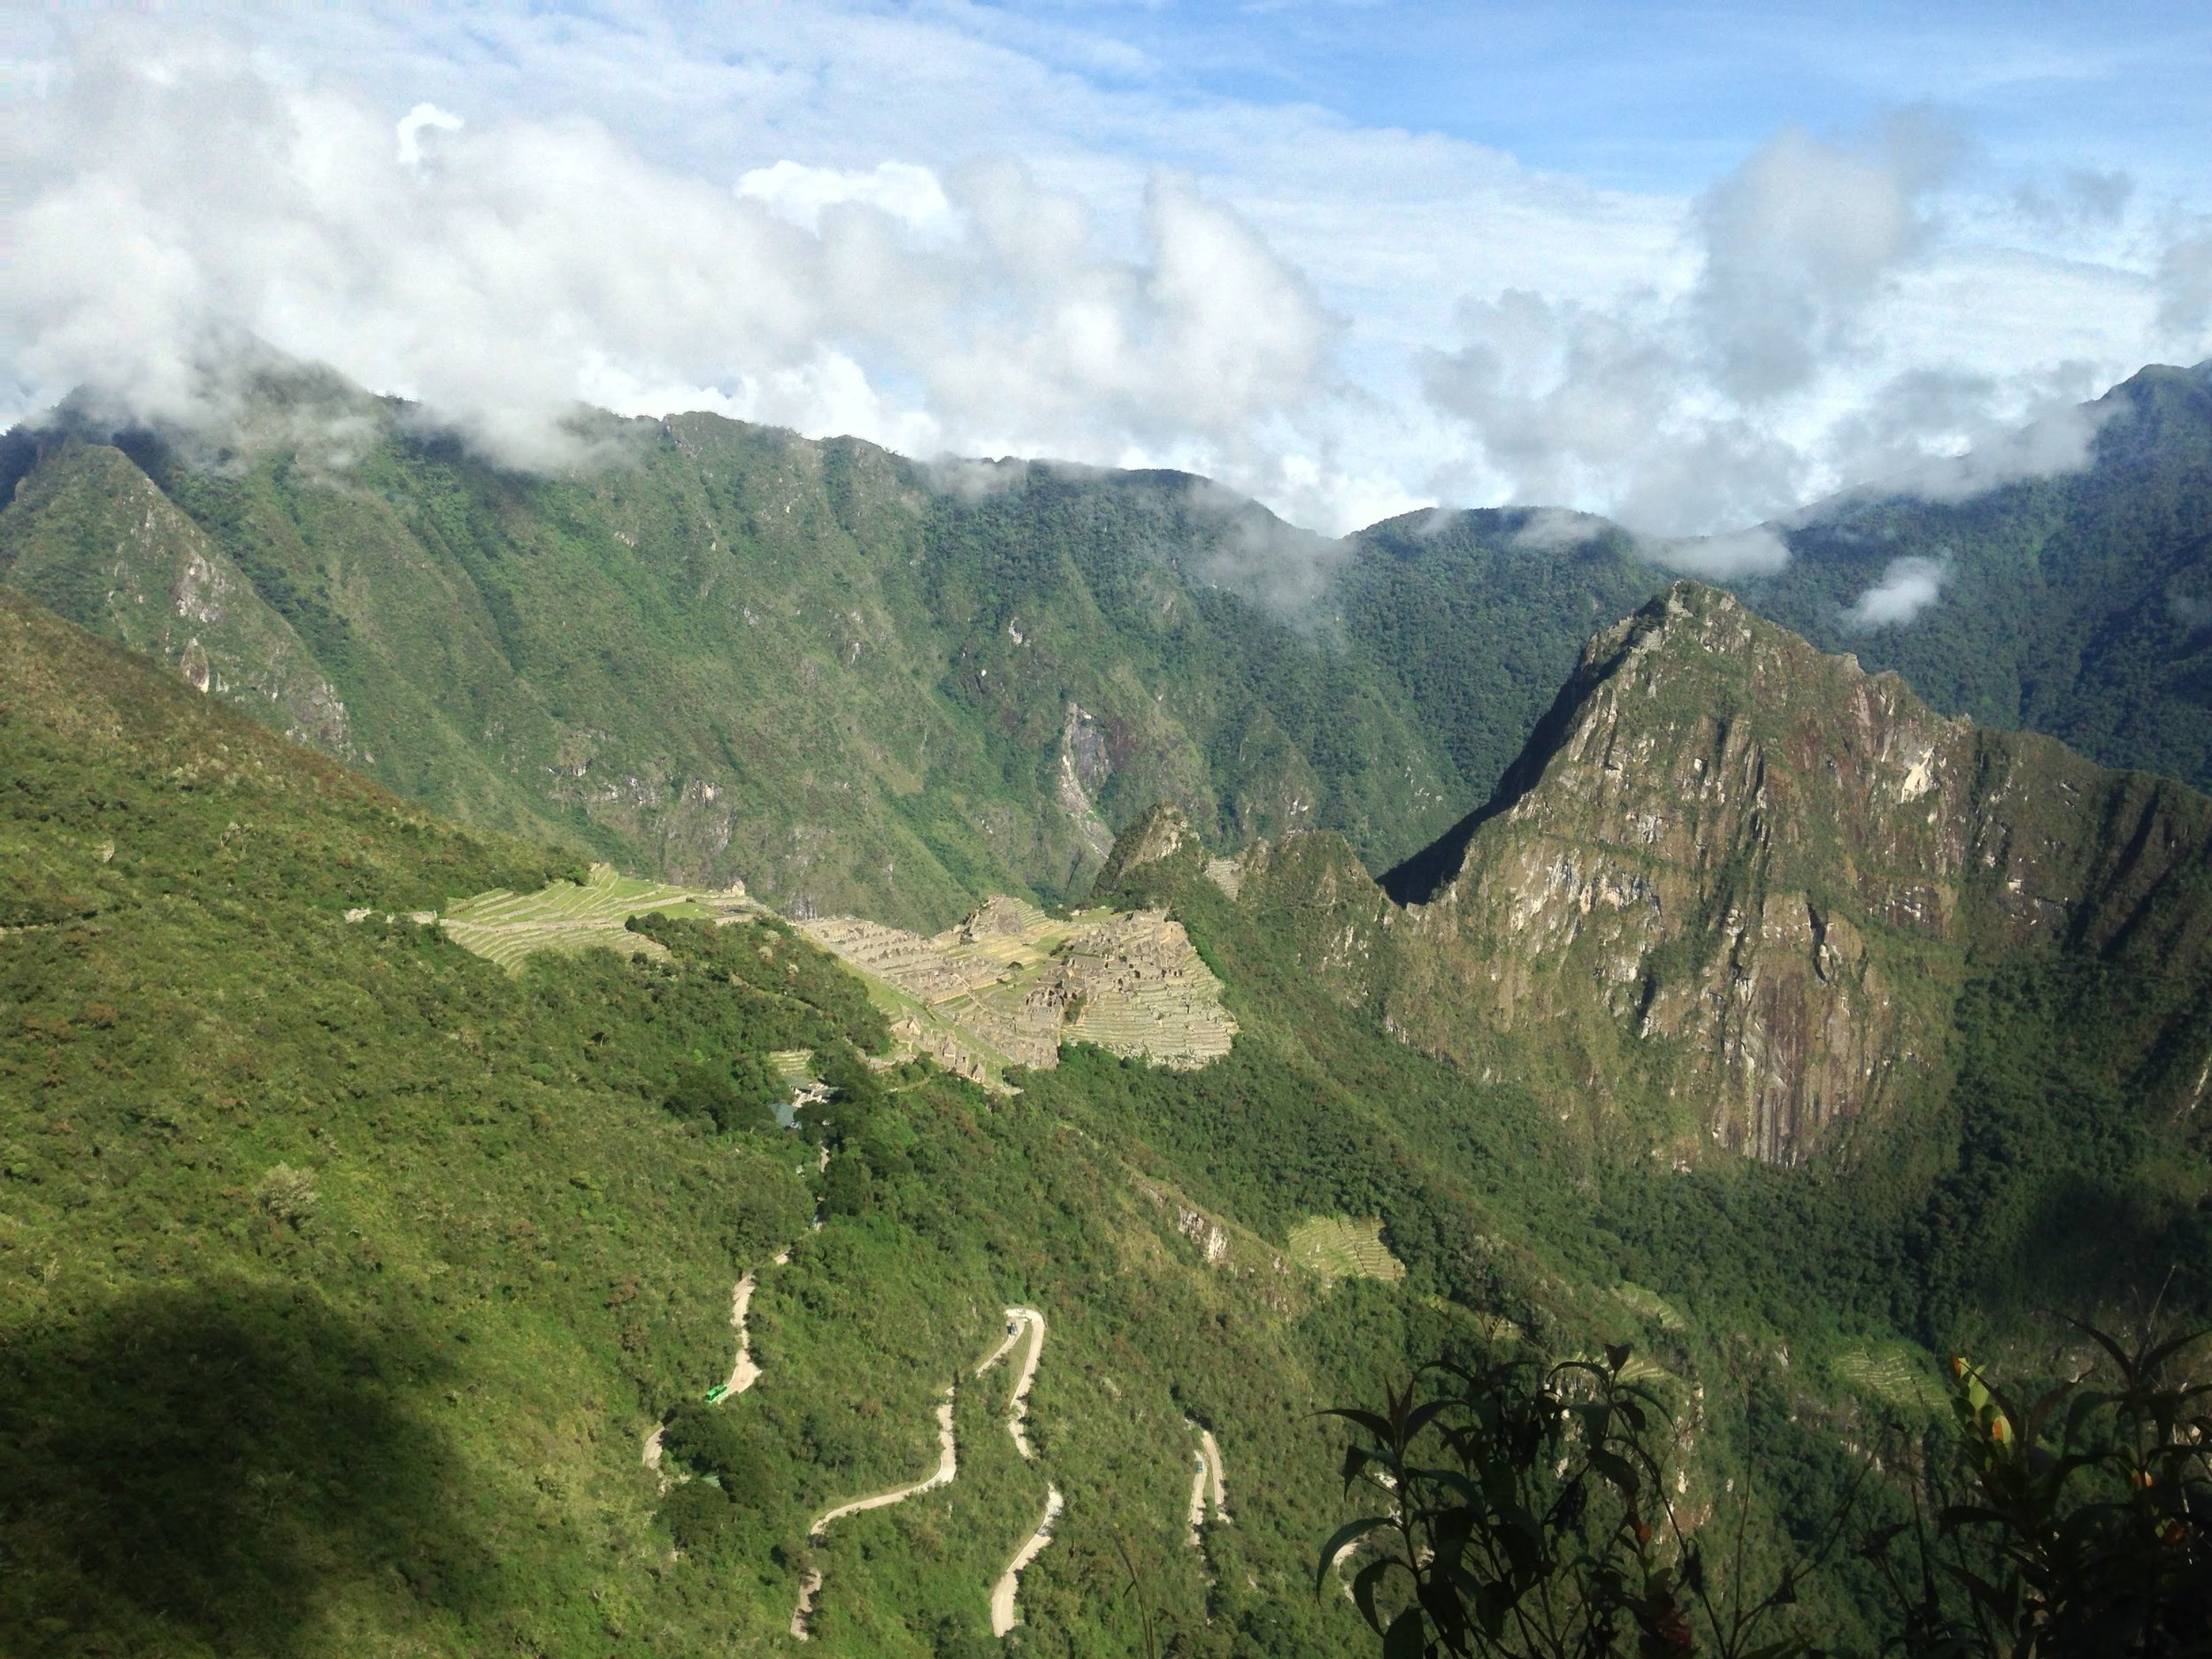 View of Machu Picchu from the Sungate